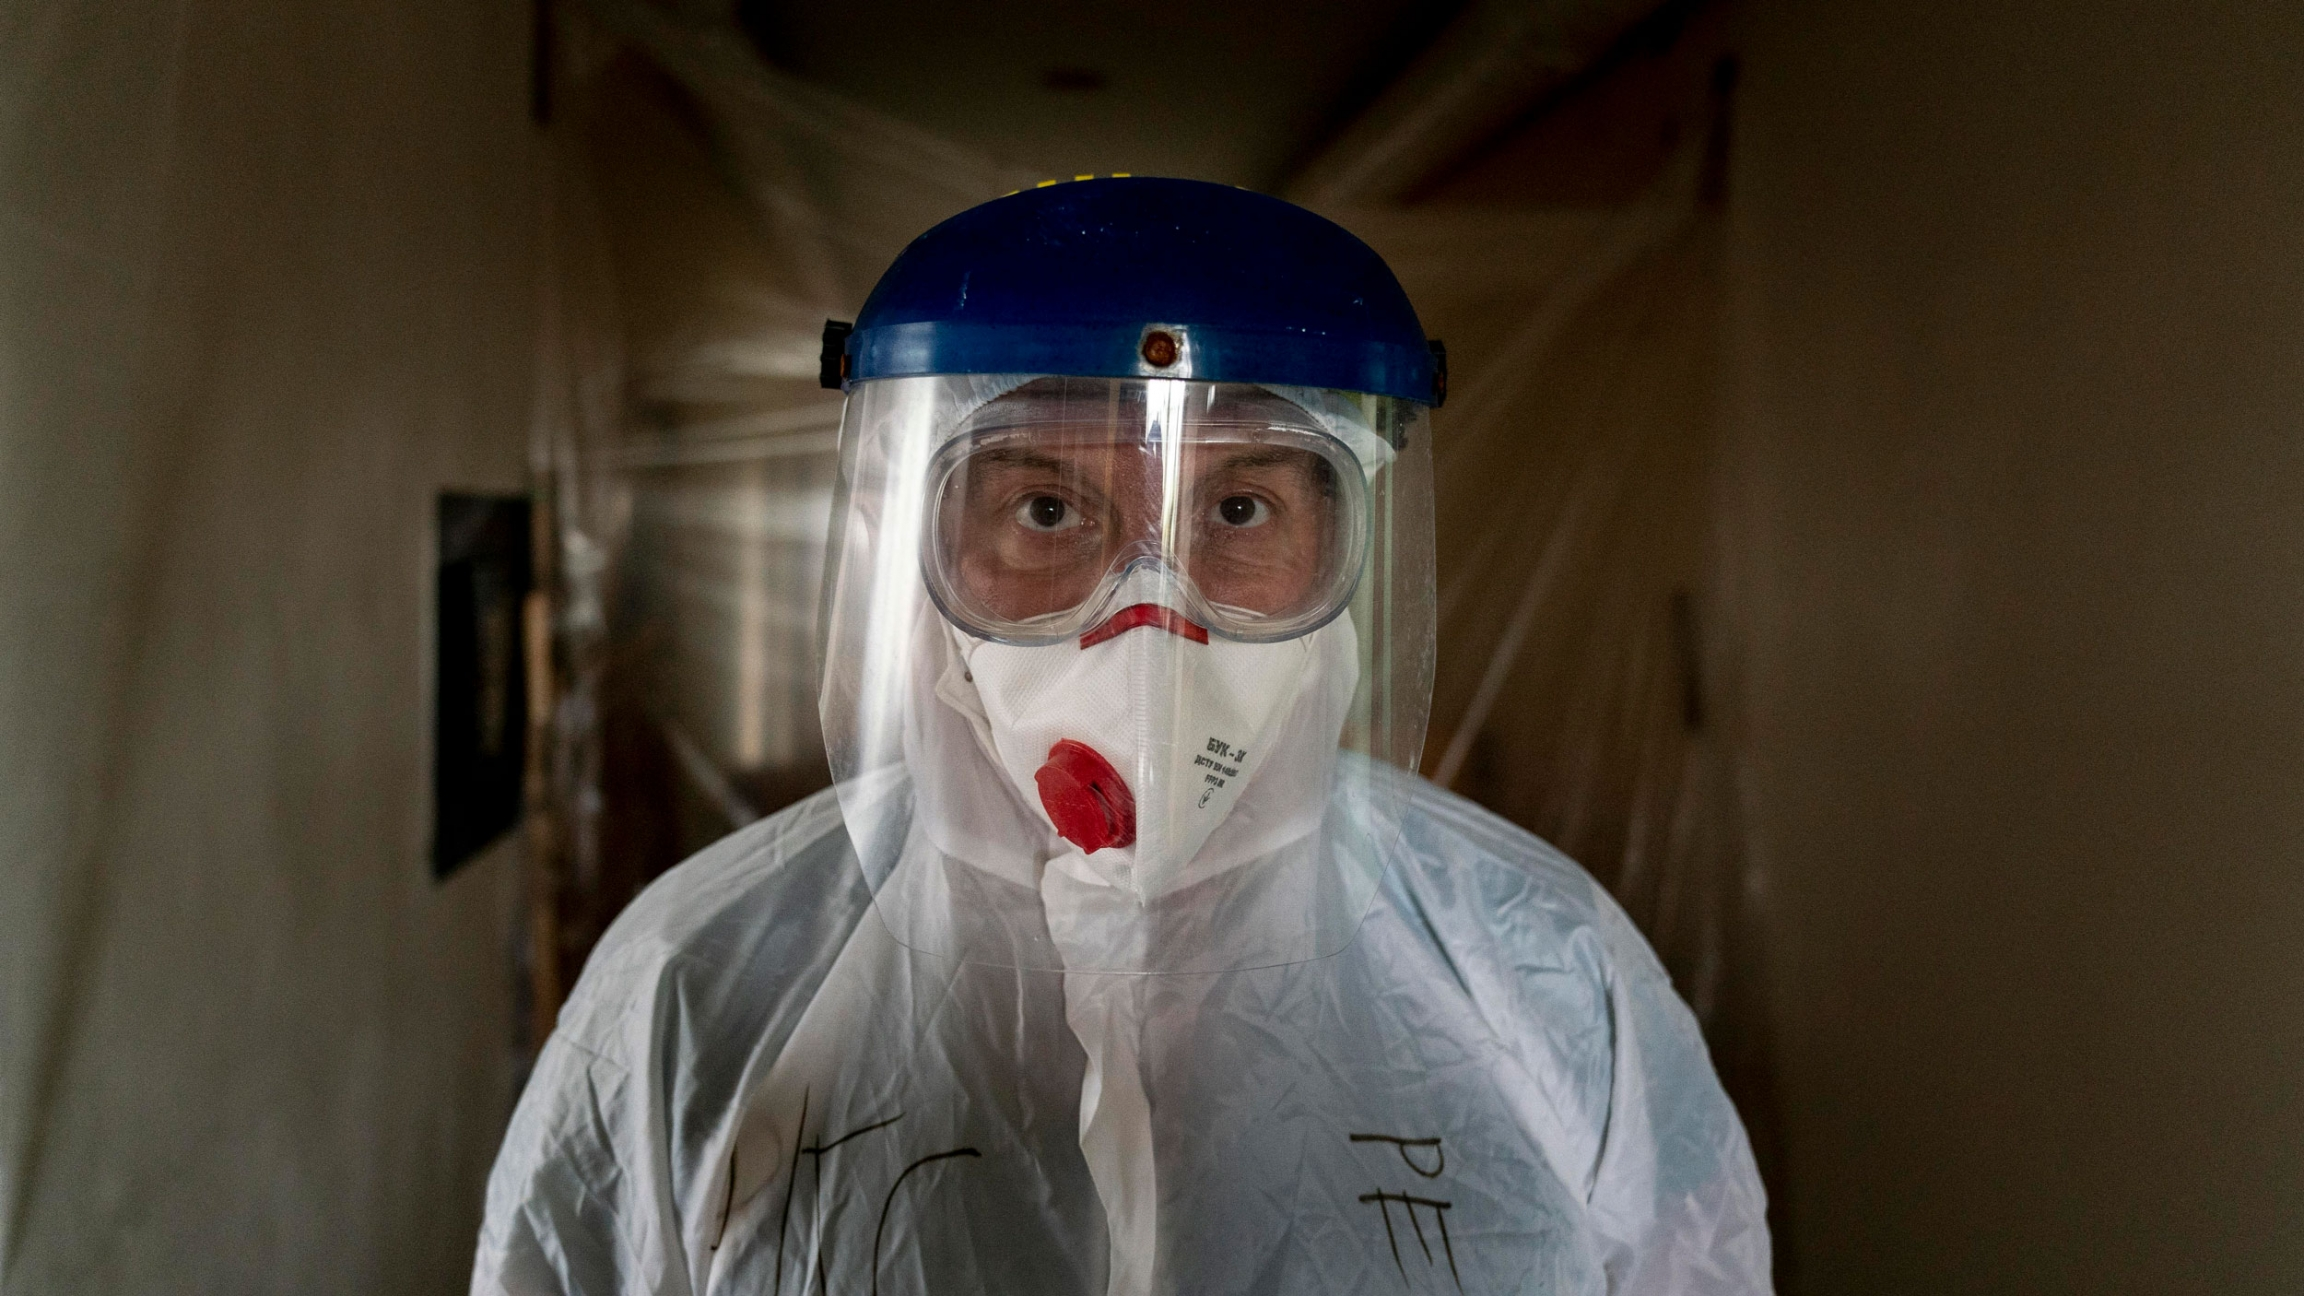 A doctor is shown looking directly into the camera and wearing goggles, a face mask and a face shield.